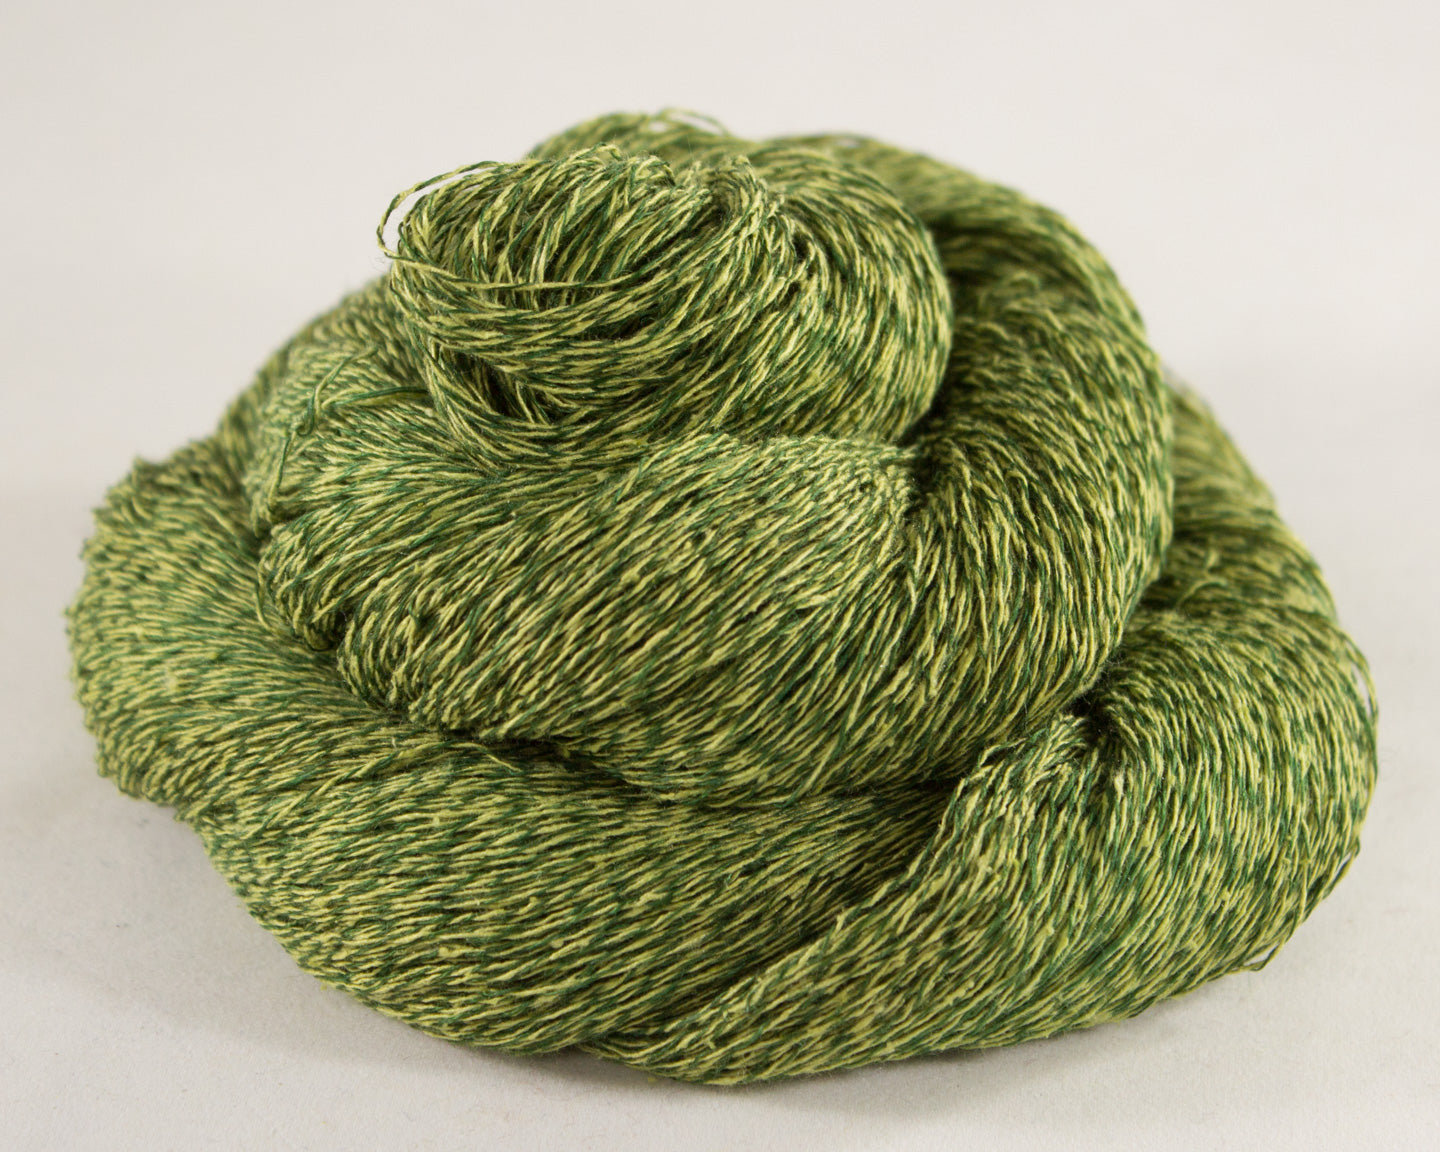 Lace Weight Linen/Silk Yarn - green